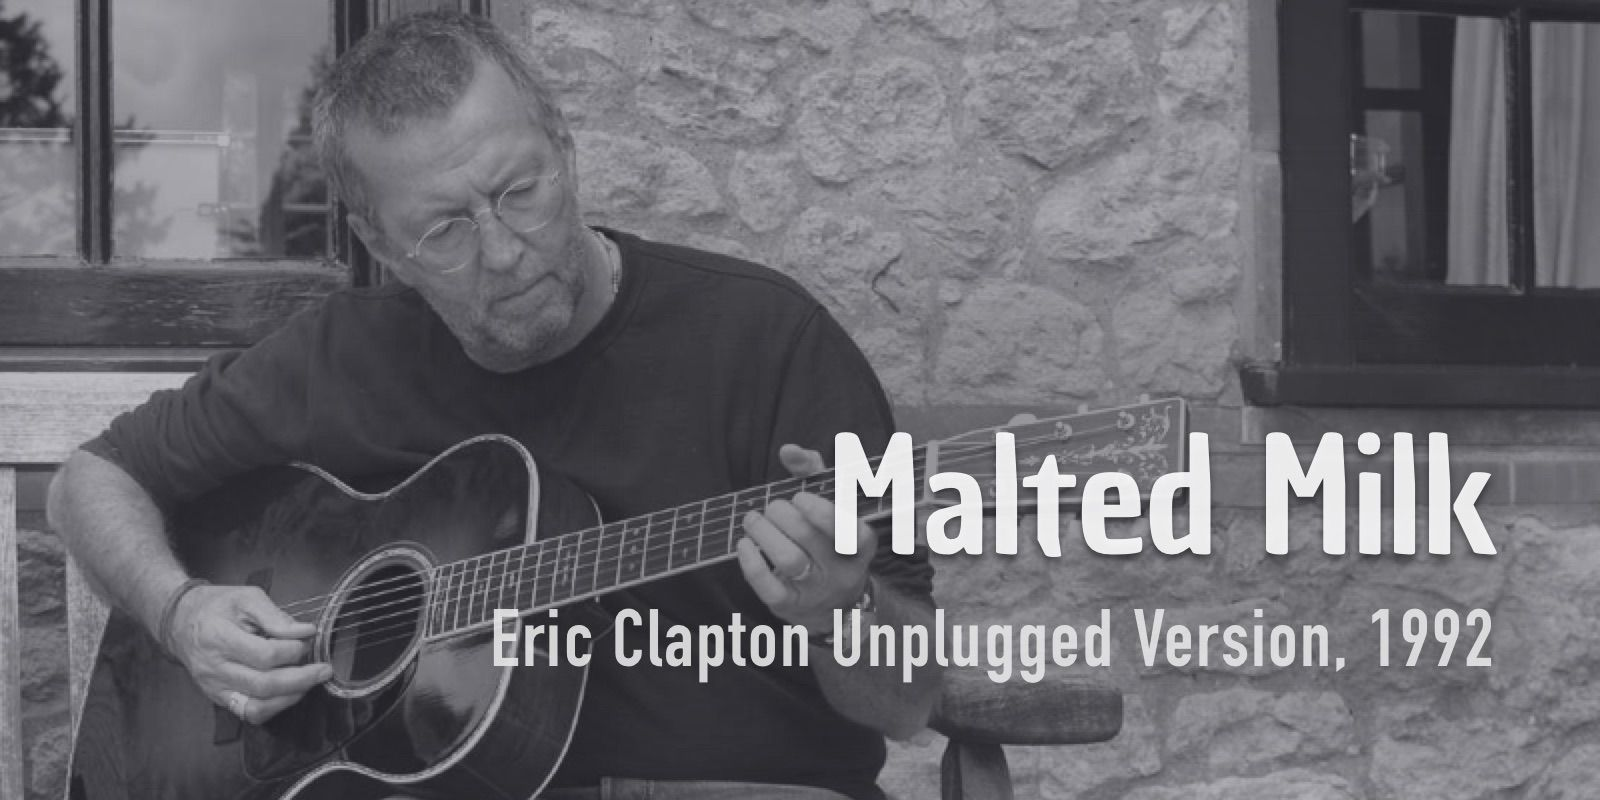 Burninguitar show you how to play Malted Milk in Eric Clapton's version. A great classic of Acoustic Blues Repertoire